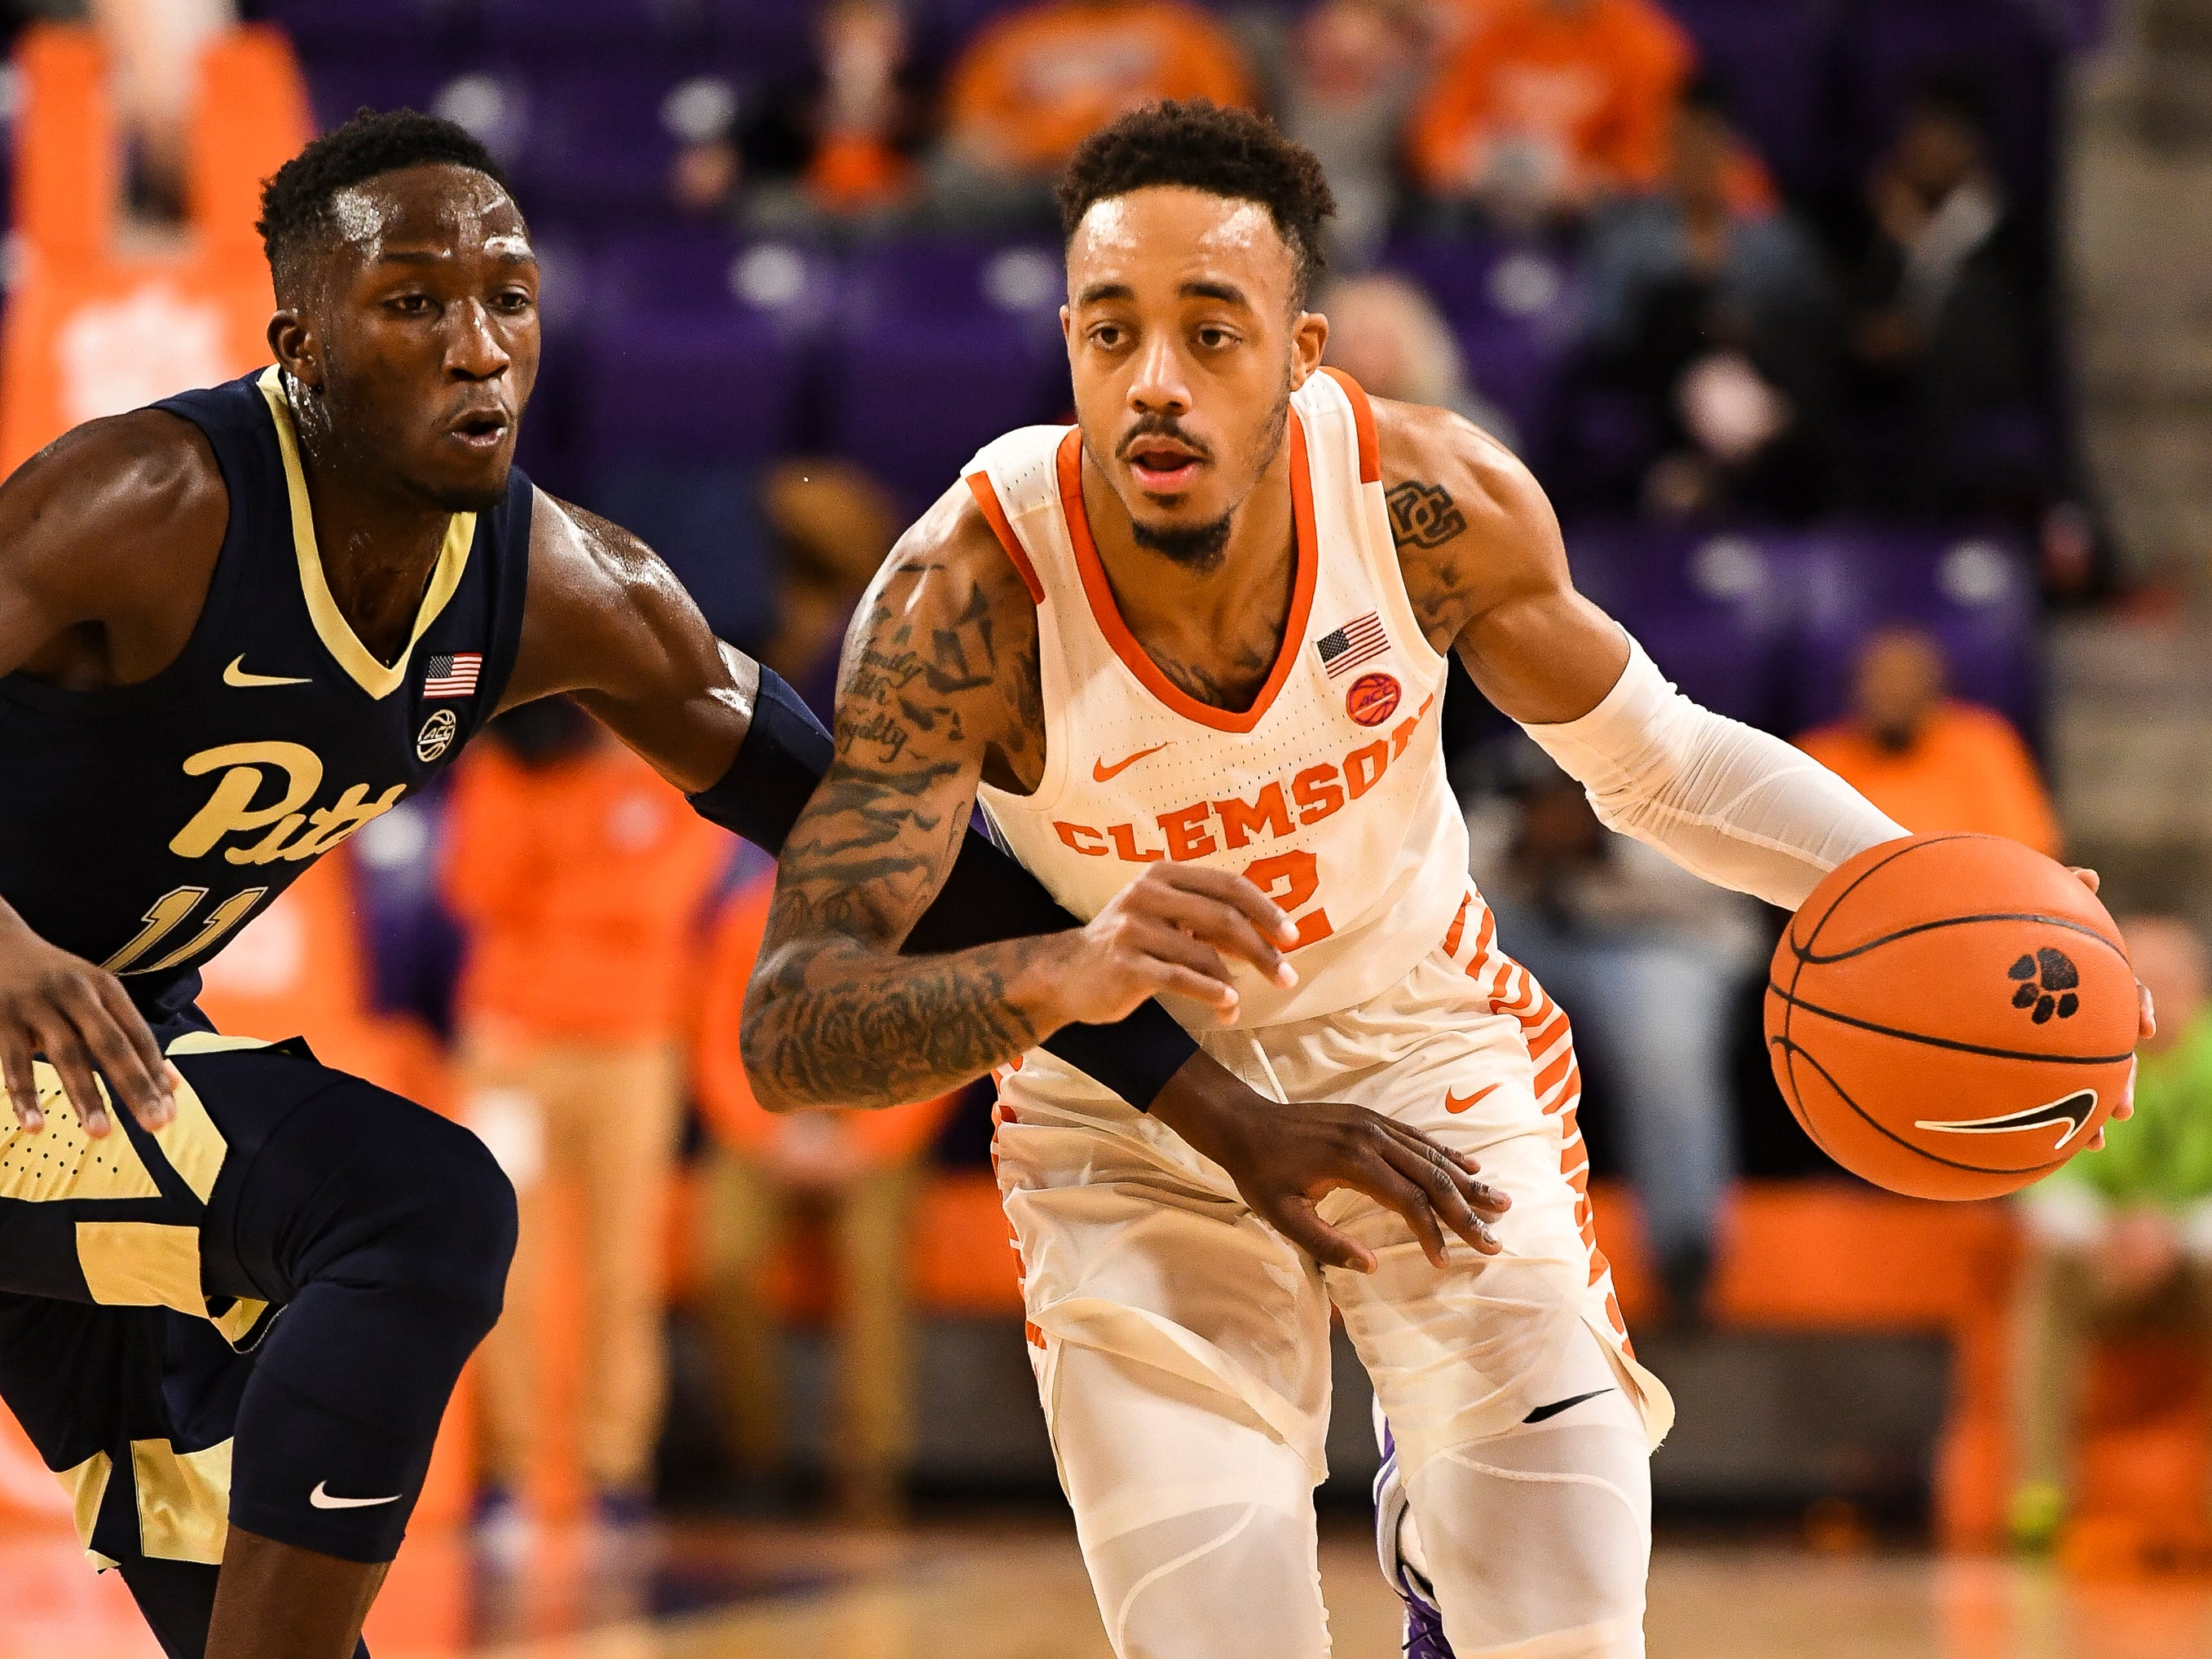 Clemson guard Marcquise Reed (2) attempts to advance past PittsburghÕs Sidy NÕDir (11) at Littlejohn Stadium on Tuesday, Jan. 29, 2019.